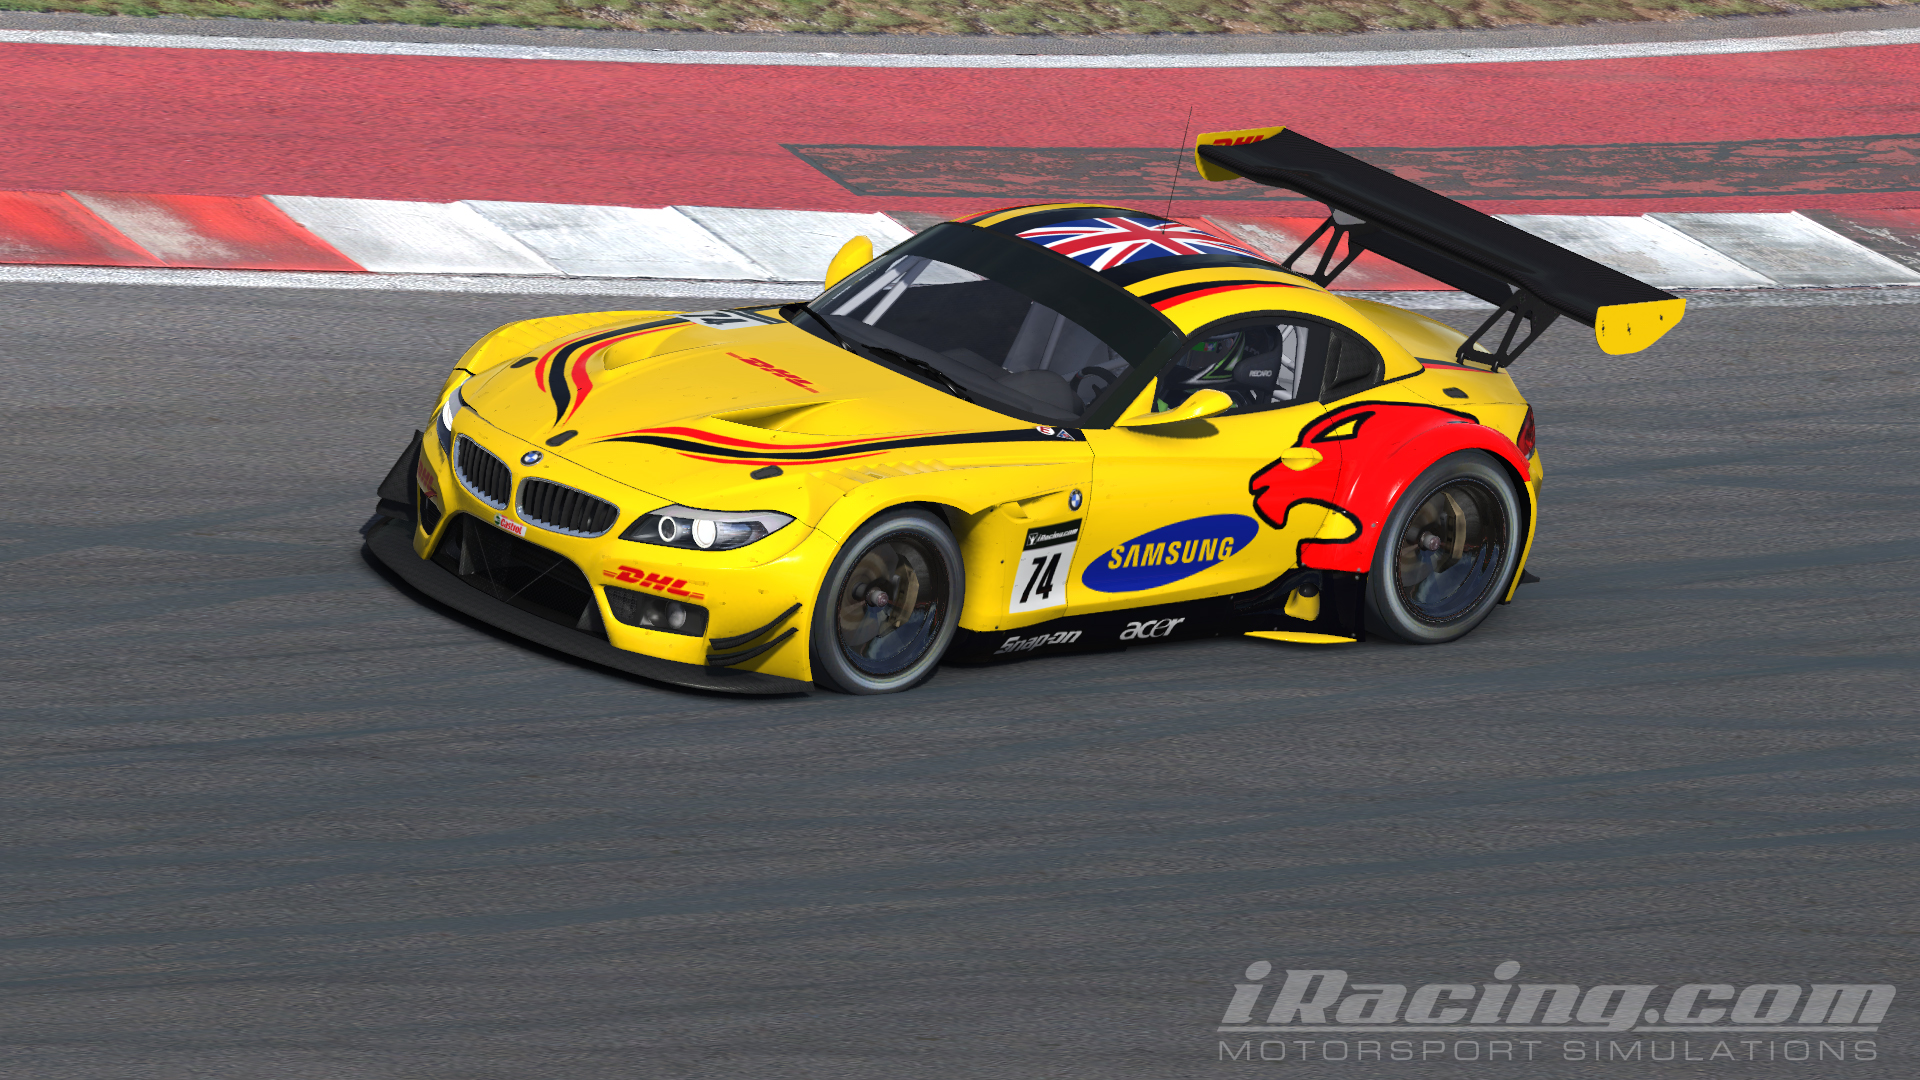 Photo Quot Bmw Z4 Gt3 Quot In The Album Quot Other Racing Games Quot By